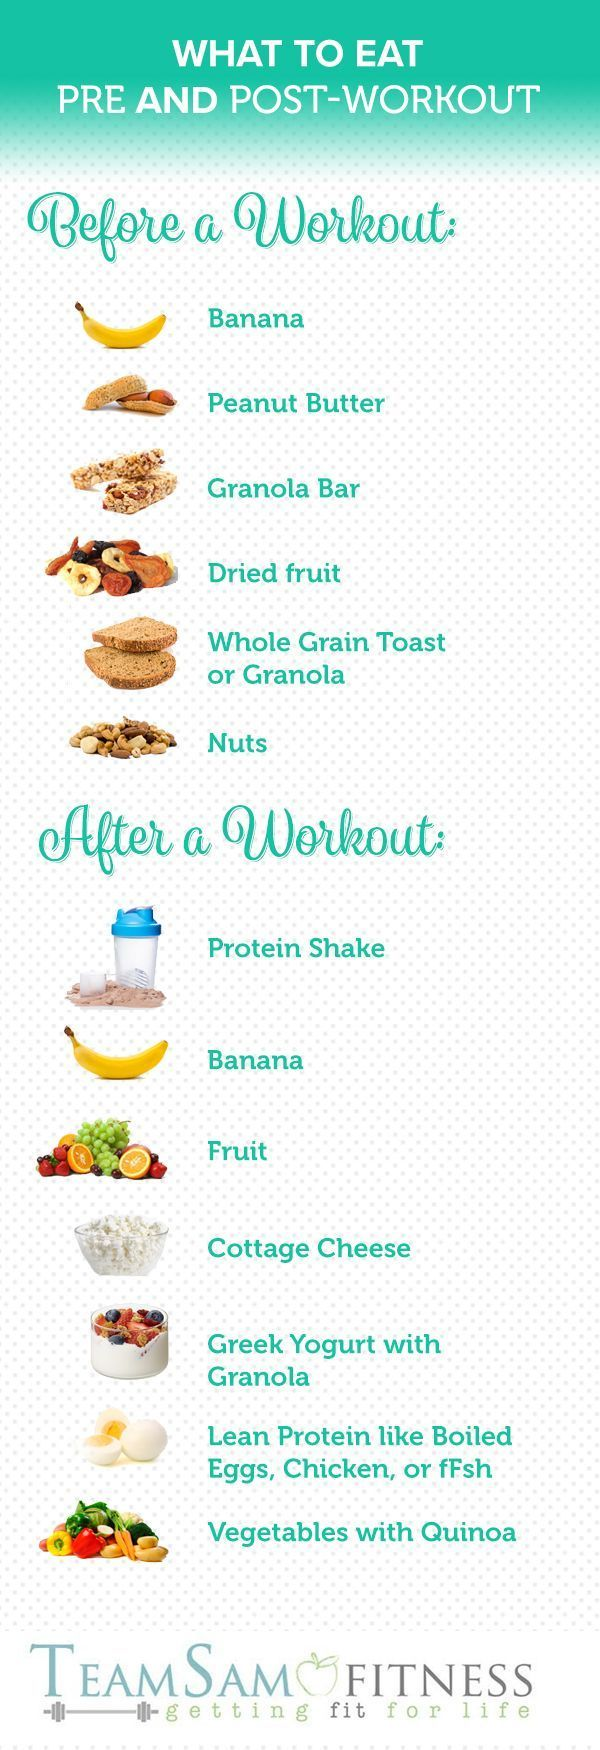 Are you fueling your body correctly for your workout? What to Eat Before & After a Workout www.teamsamfitnes...